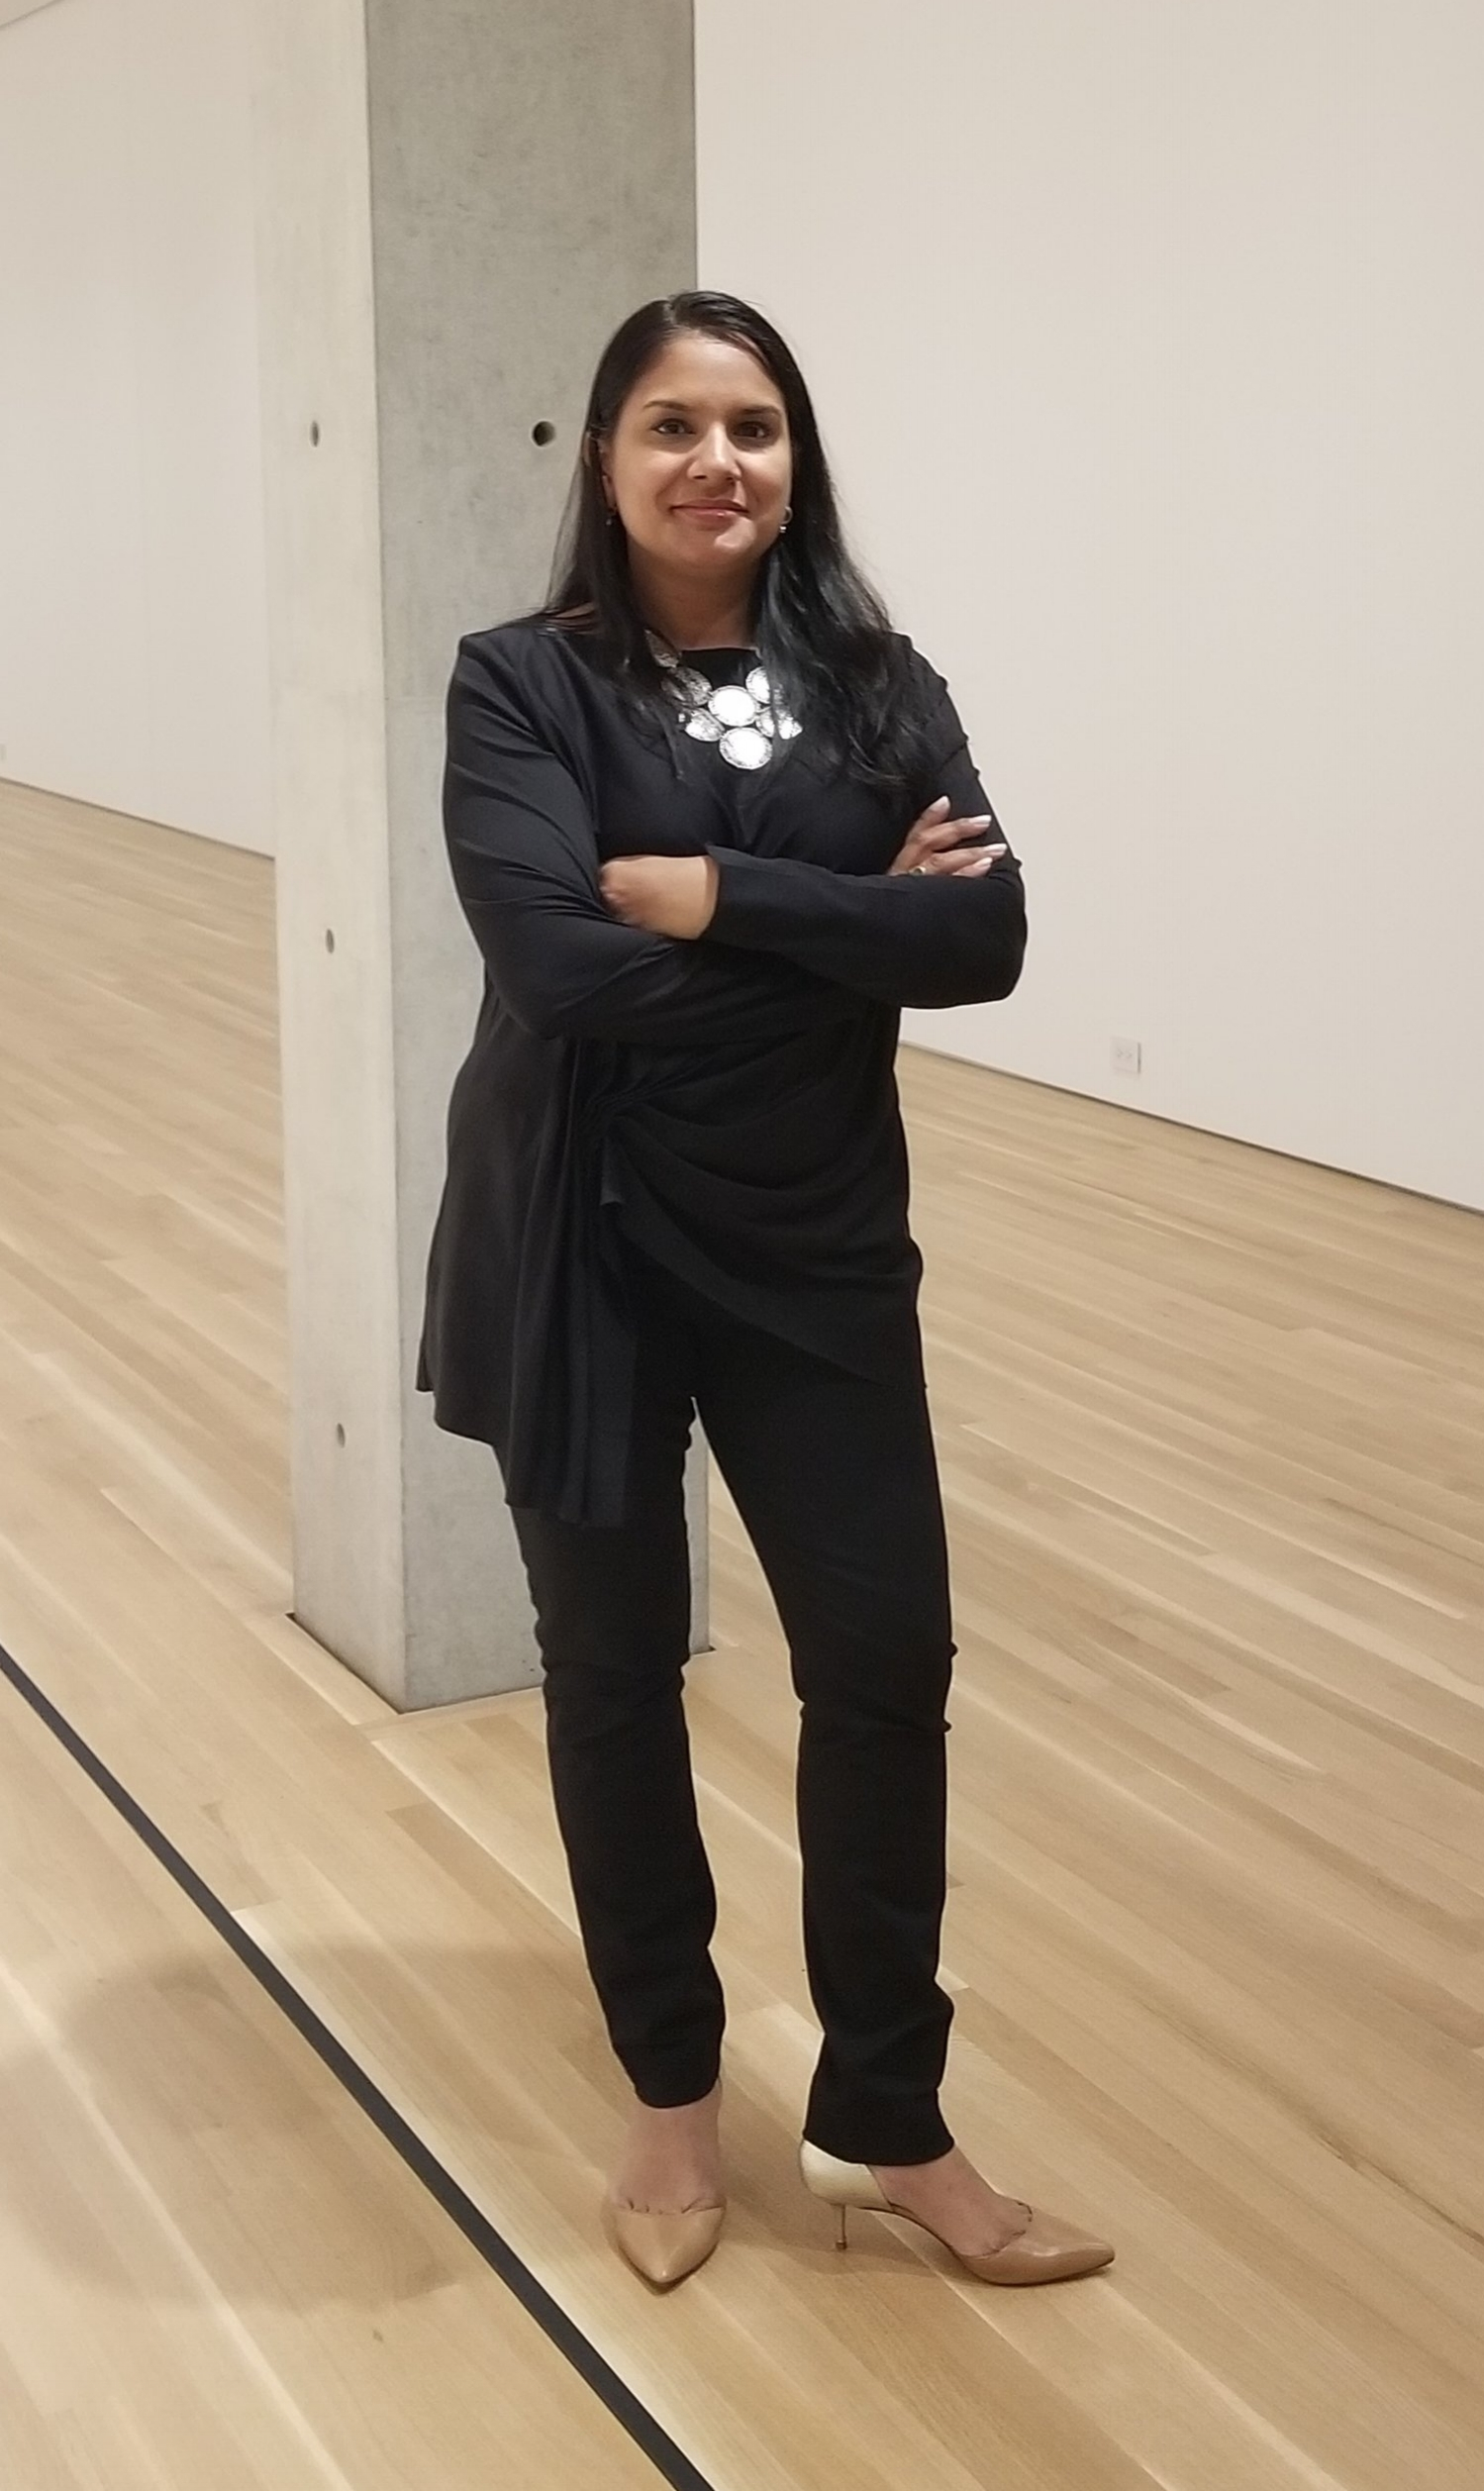 Sandhya Jain-Patel. producer of TRACE in Chicago